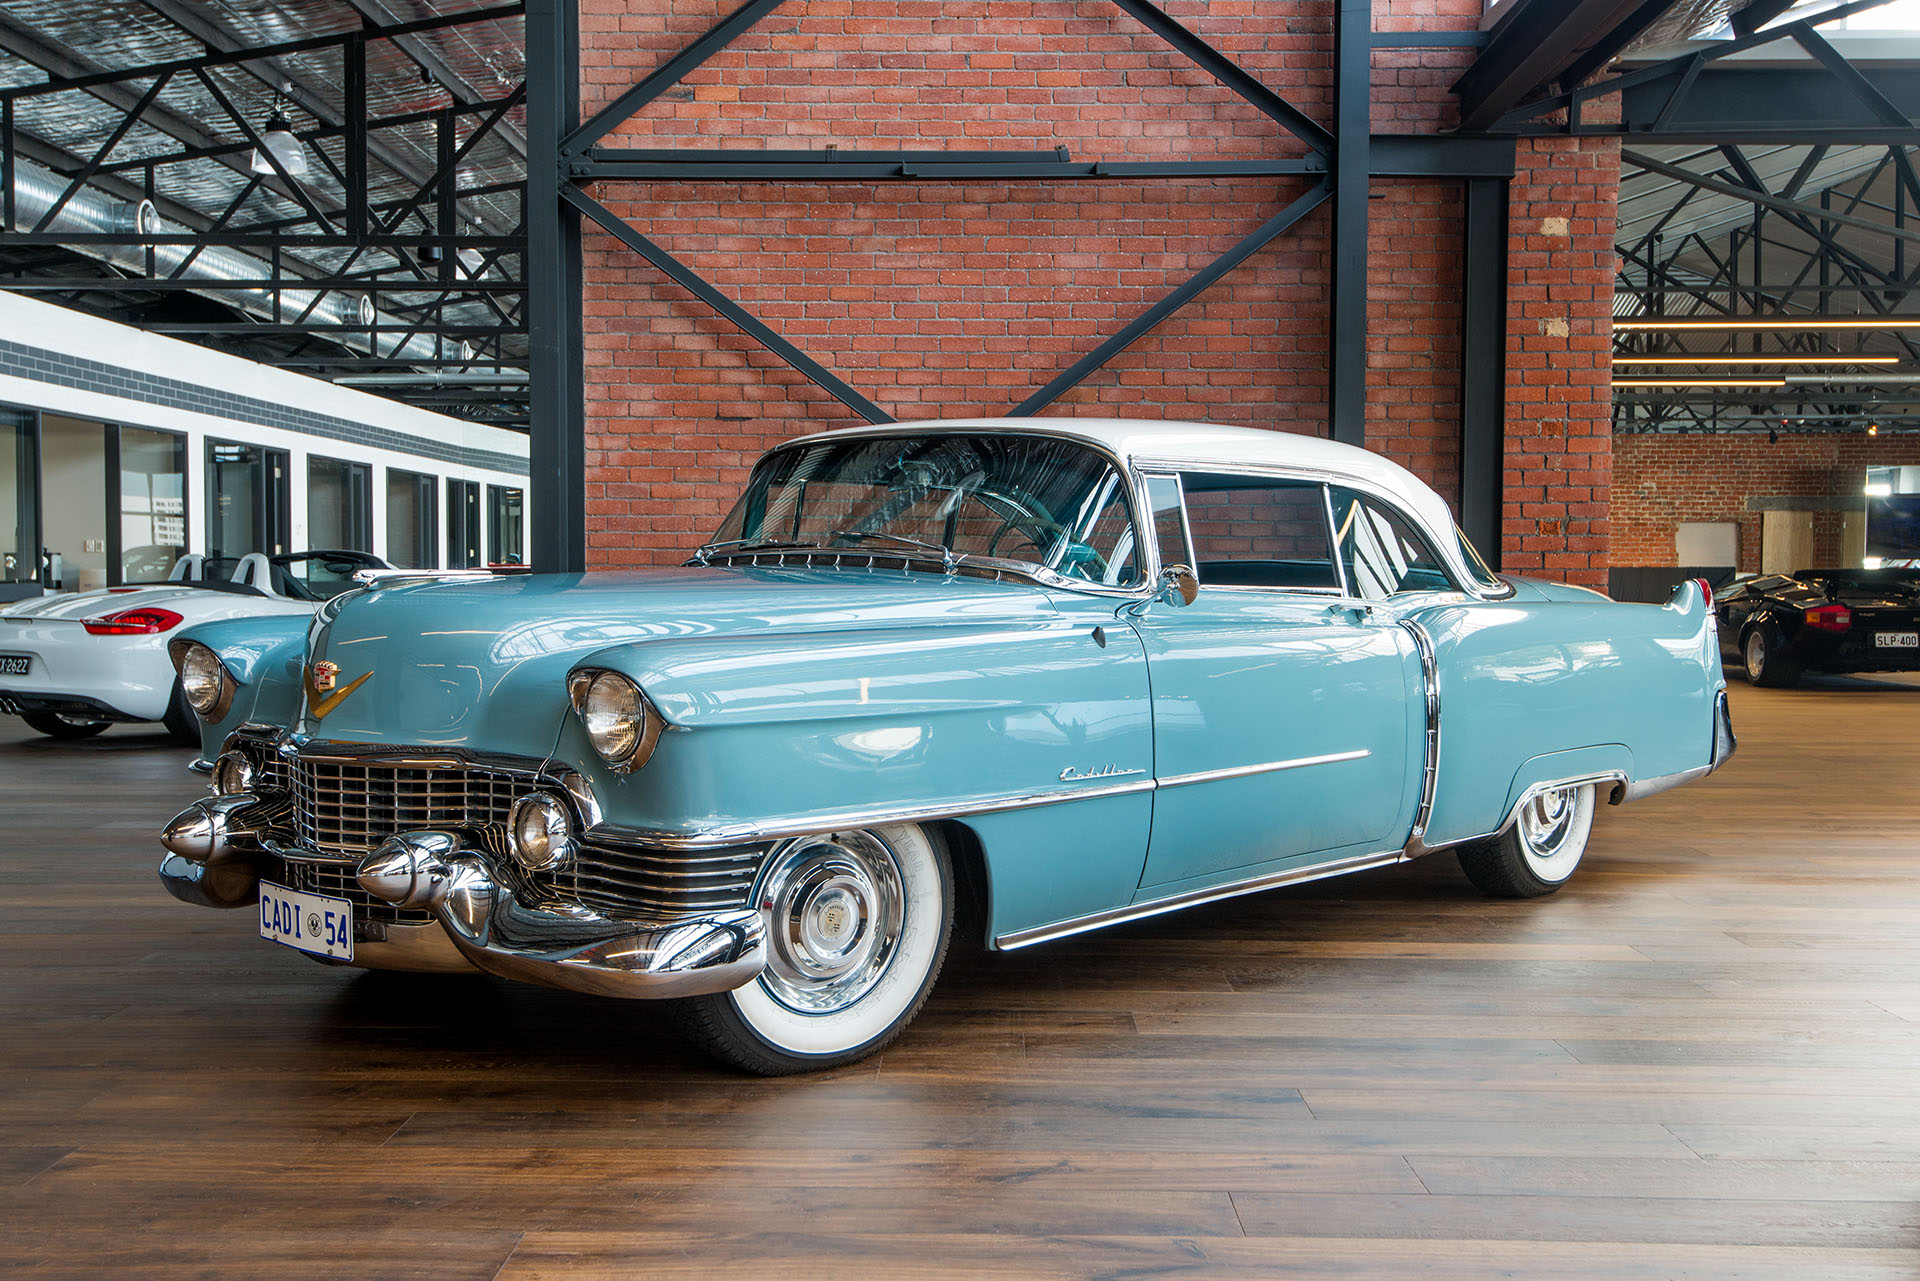 Classic Cadillac For Sale >> 1954 Cadillac Coupe De Ville - Richmonds - Classic and ...